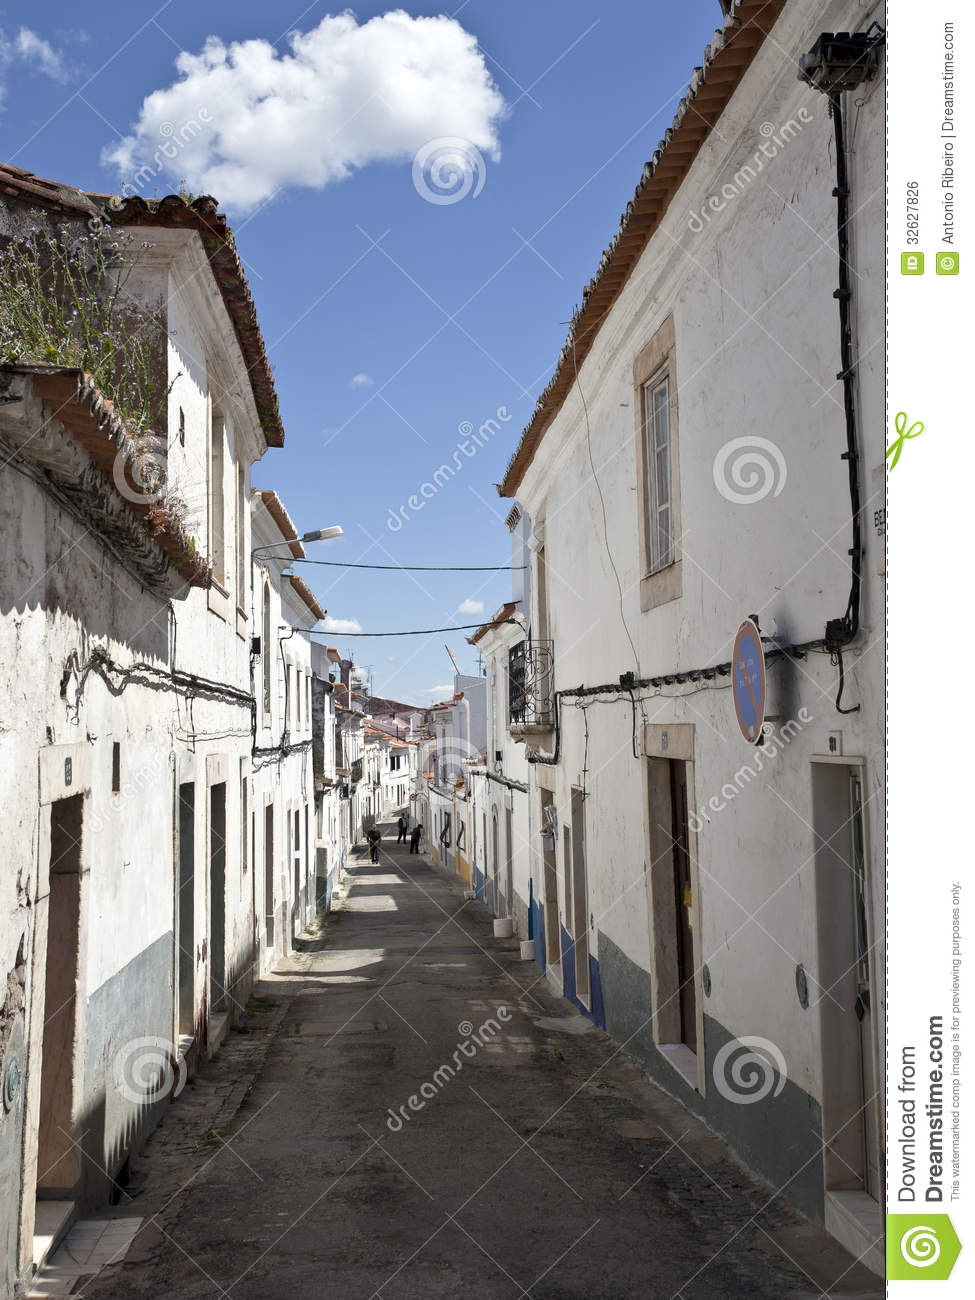 ... streets lined with red-sloped roofs and whitewashed sun-baked houses: www.dreamstime.com/royalty-free-stock-image-streets-borba-portugal...